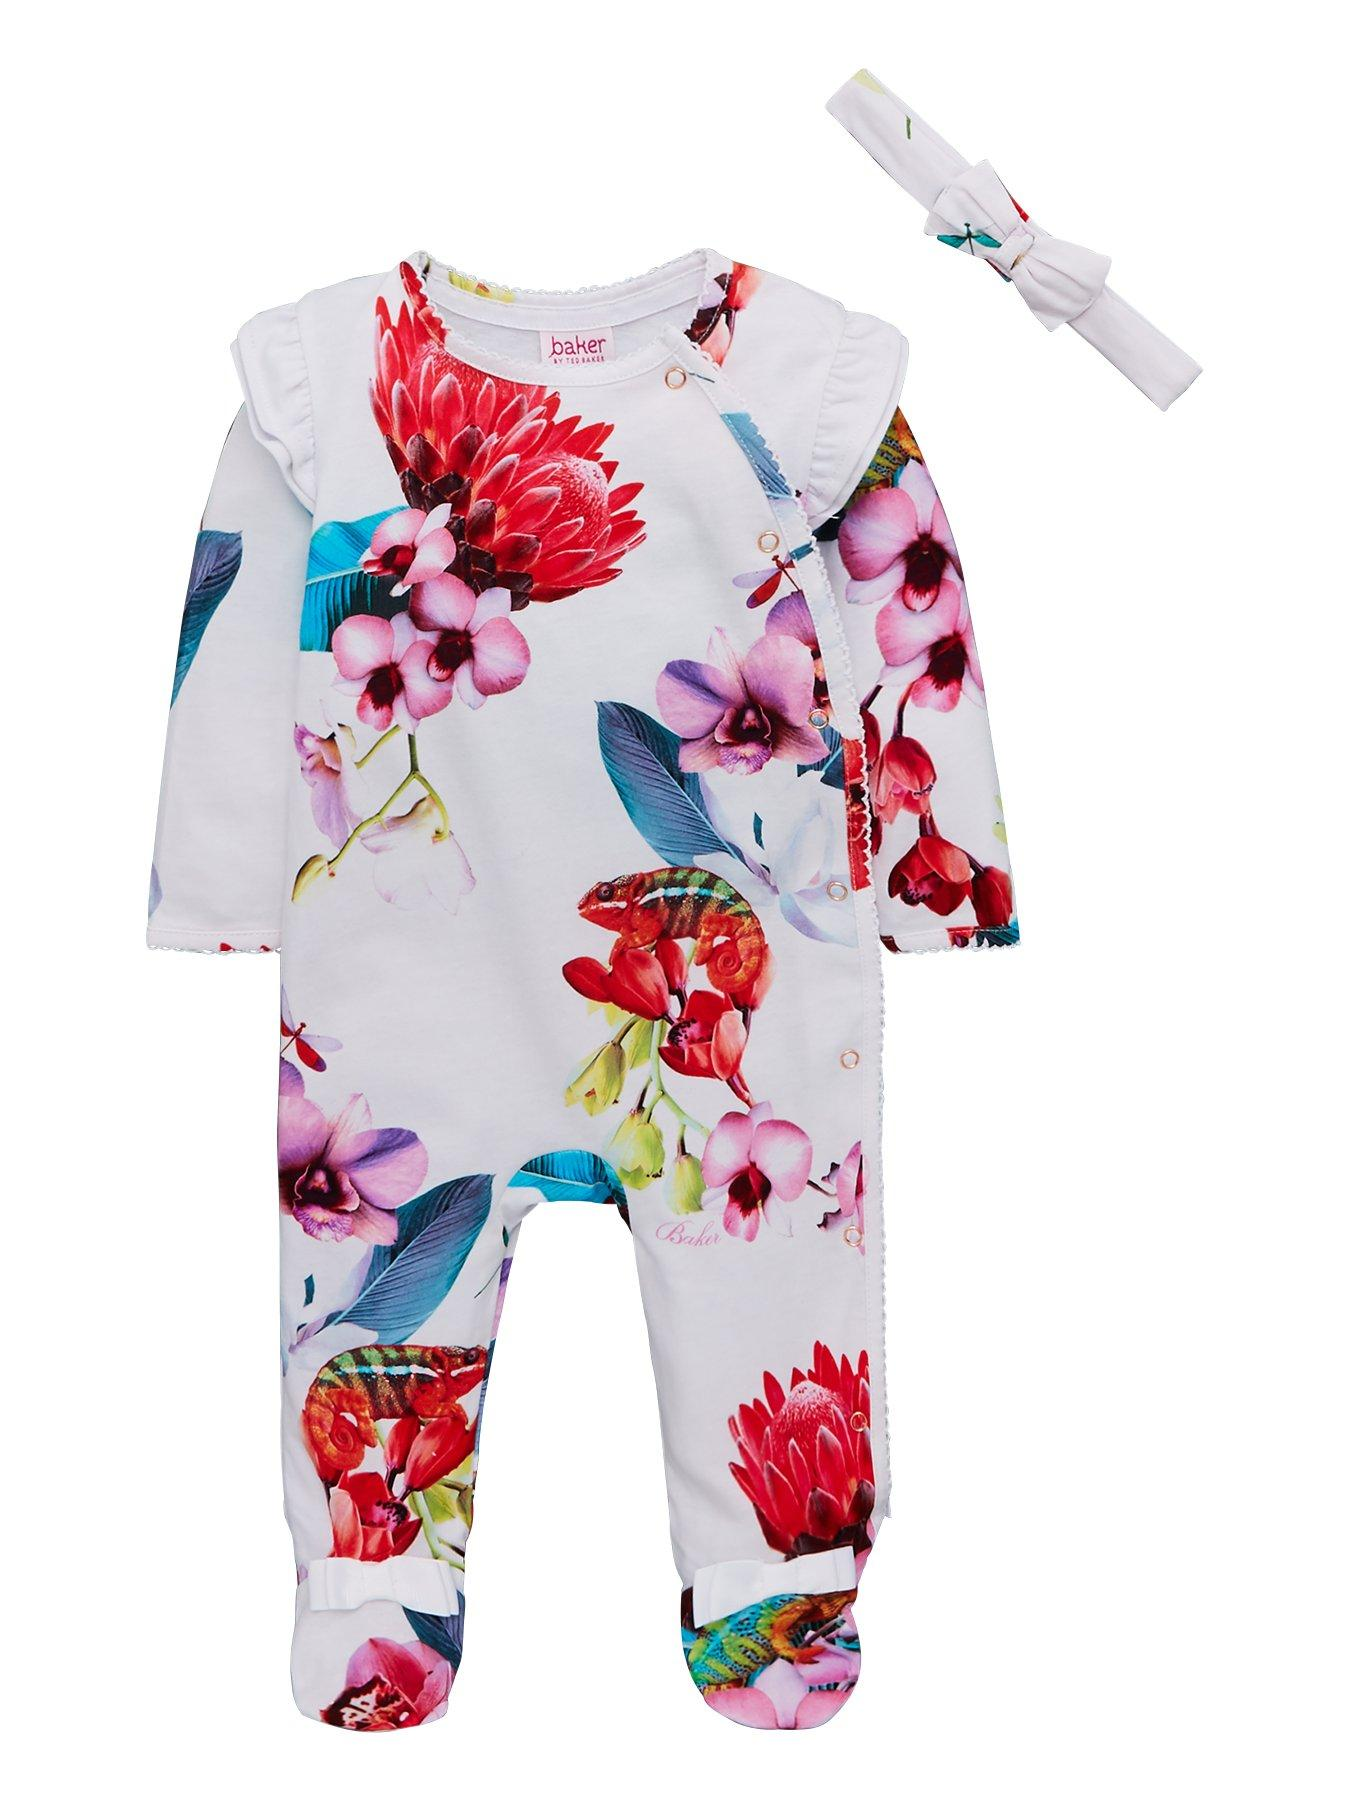 floral Low Price Creative Monsoon Girls Romper Sleepsuit 0-3 Months